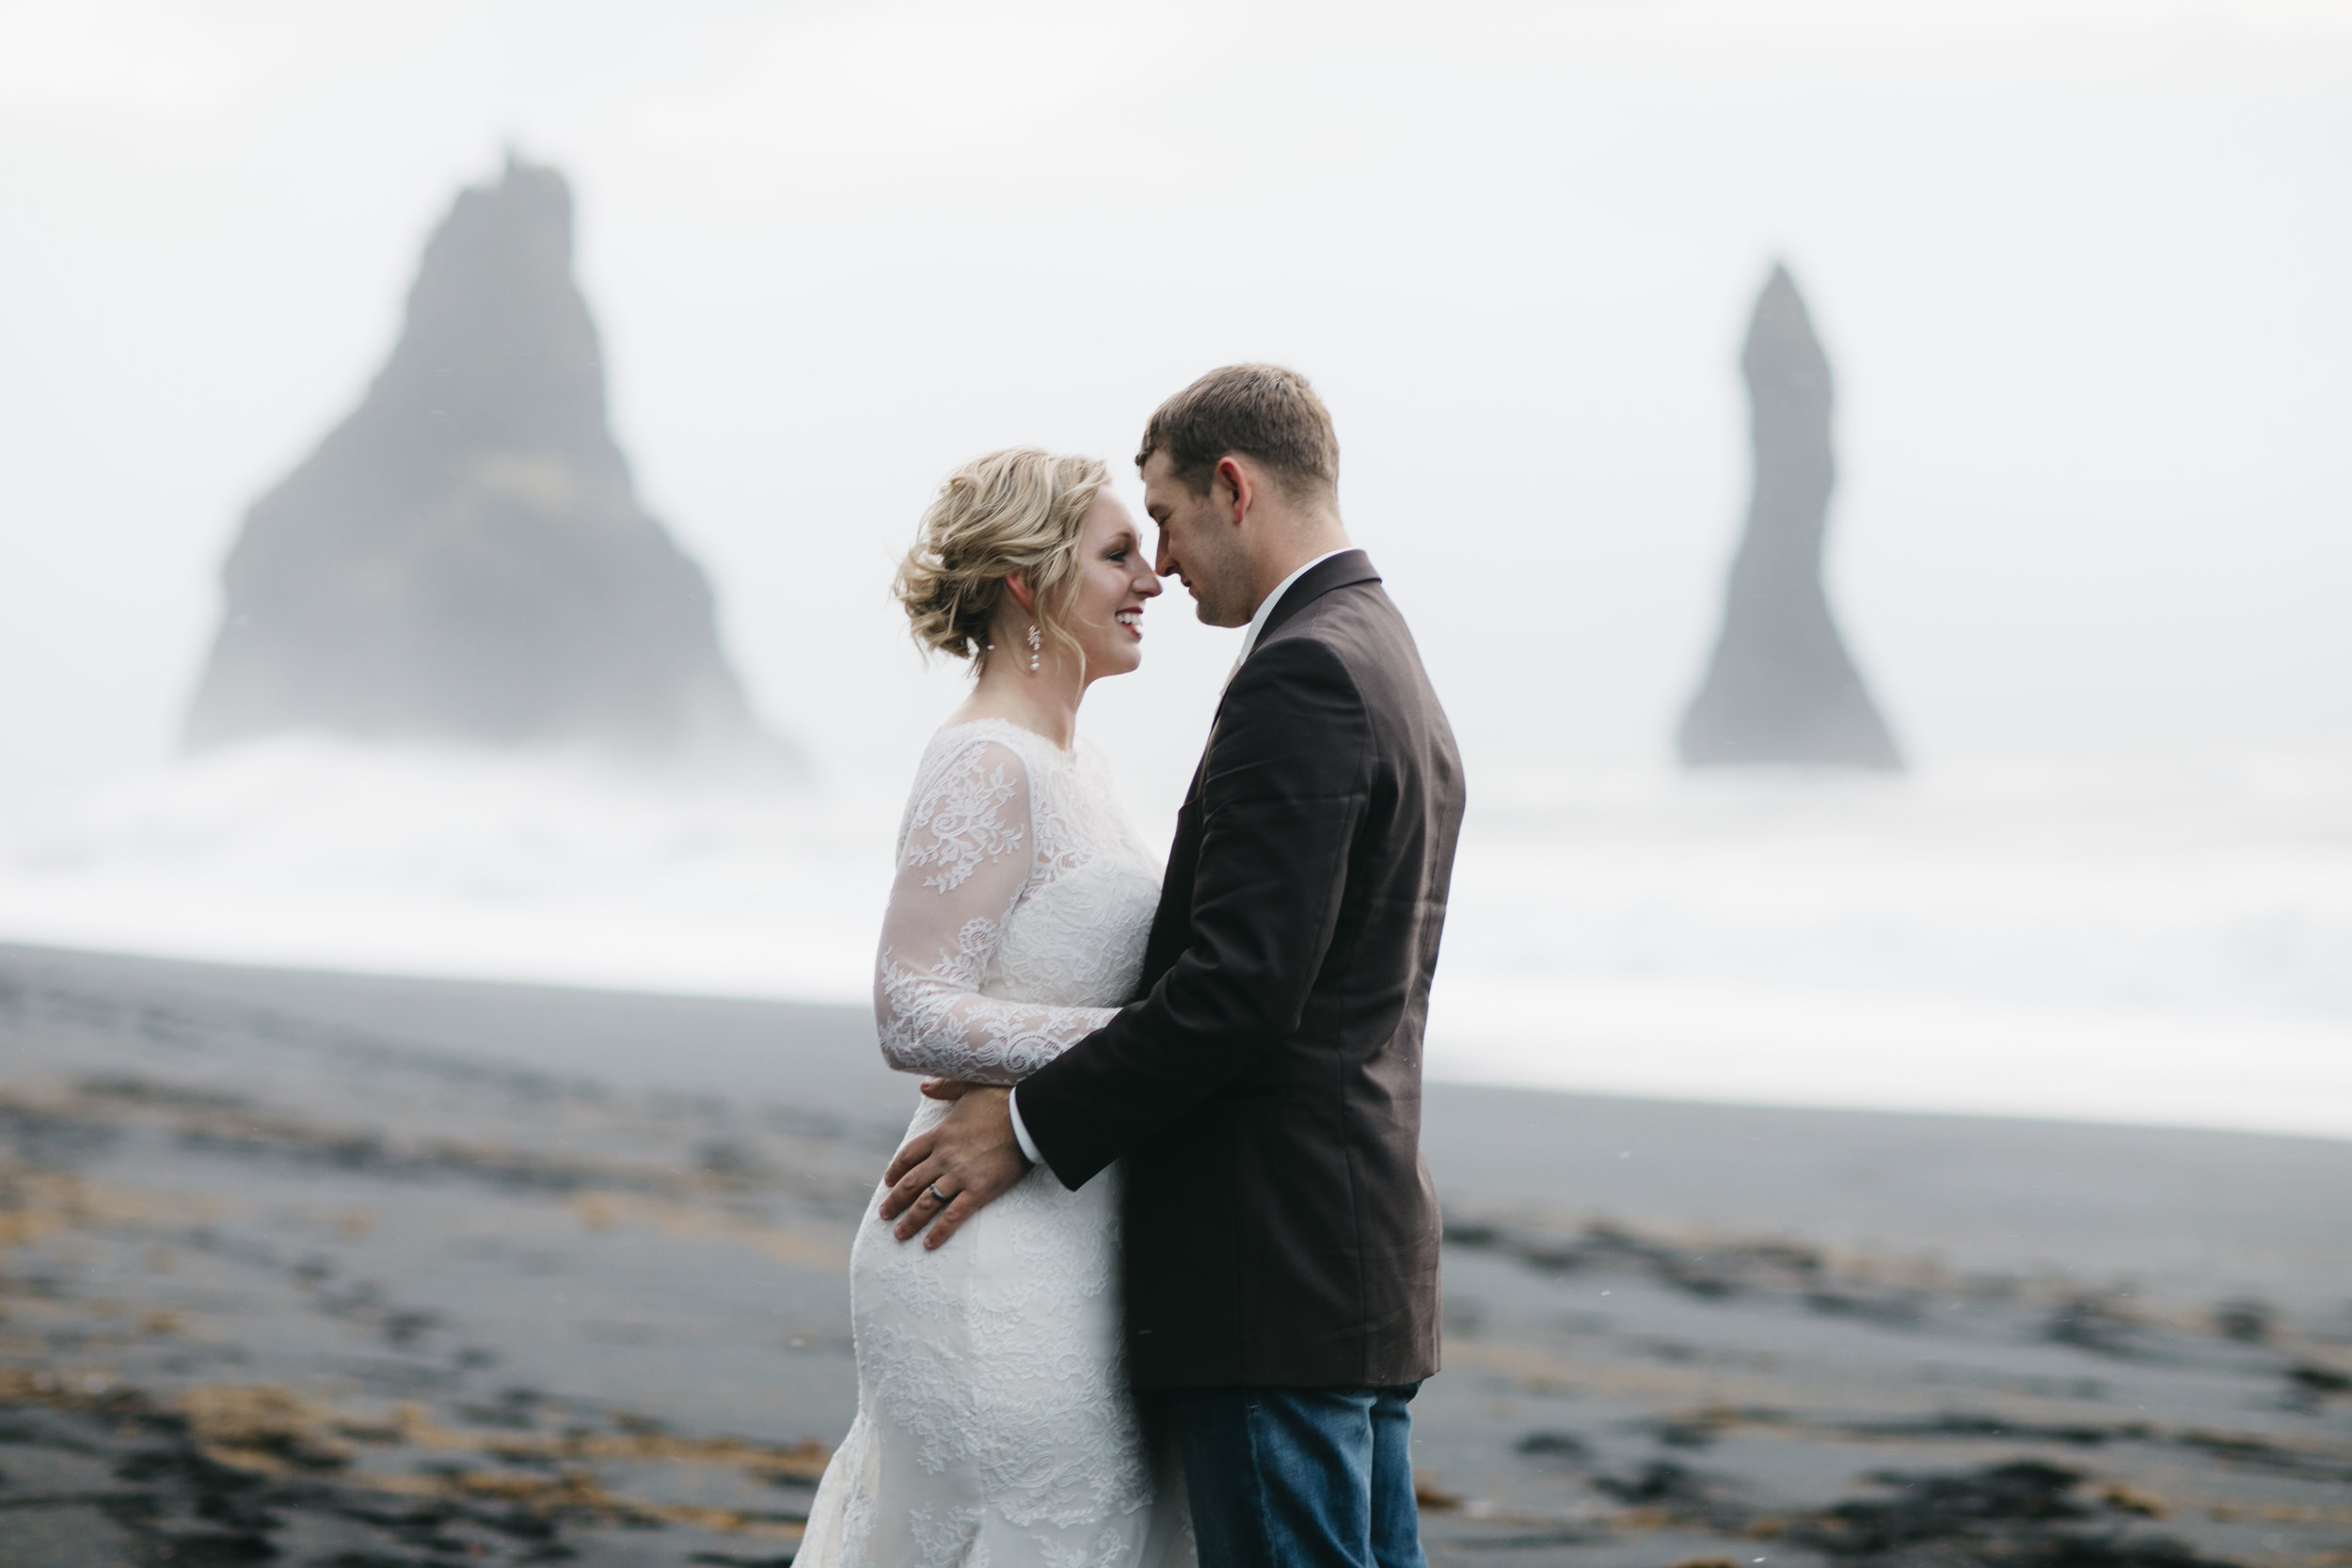 A couple look into each other's eyes during their Black Sand Beach Elopement in Vik Iceland by wedding photographers Colby and Jess, colbyandjess.com